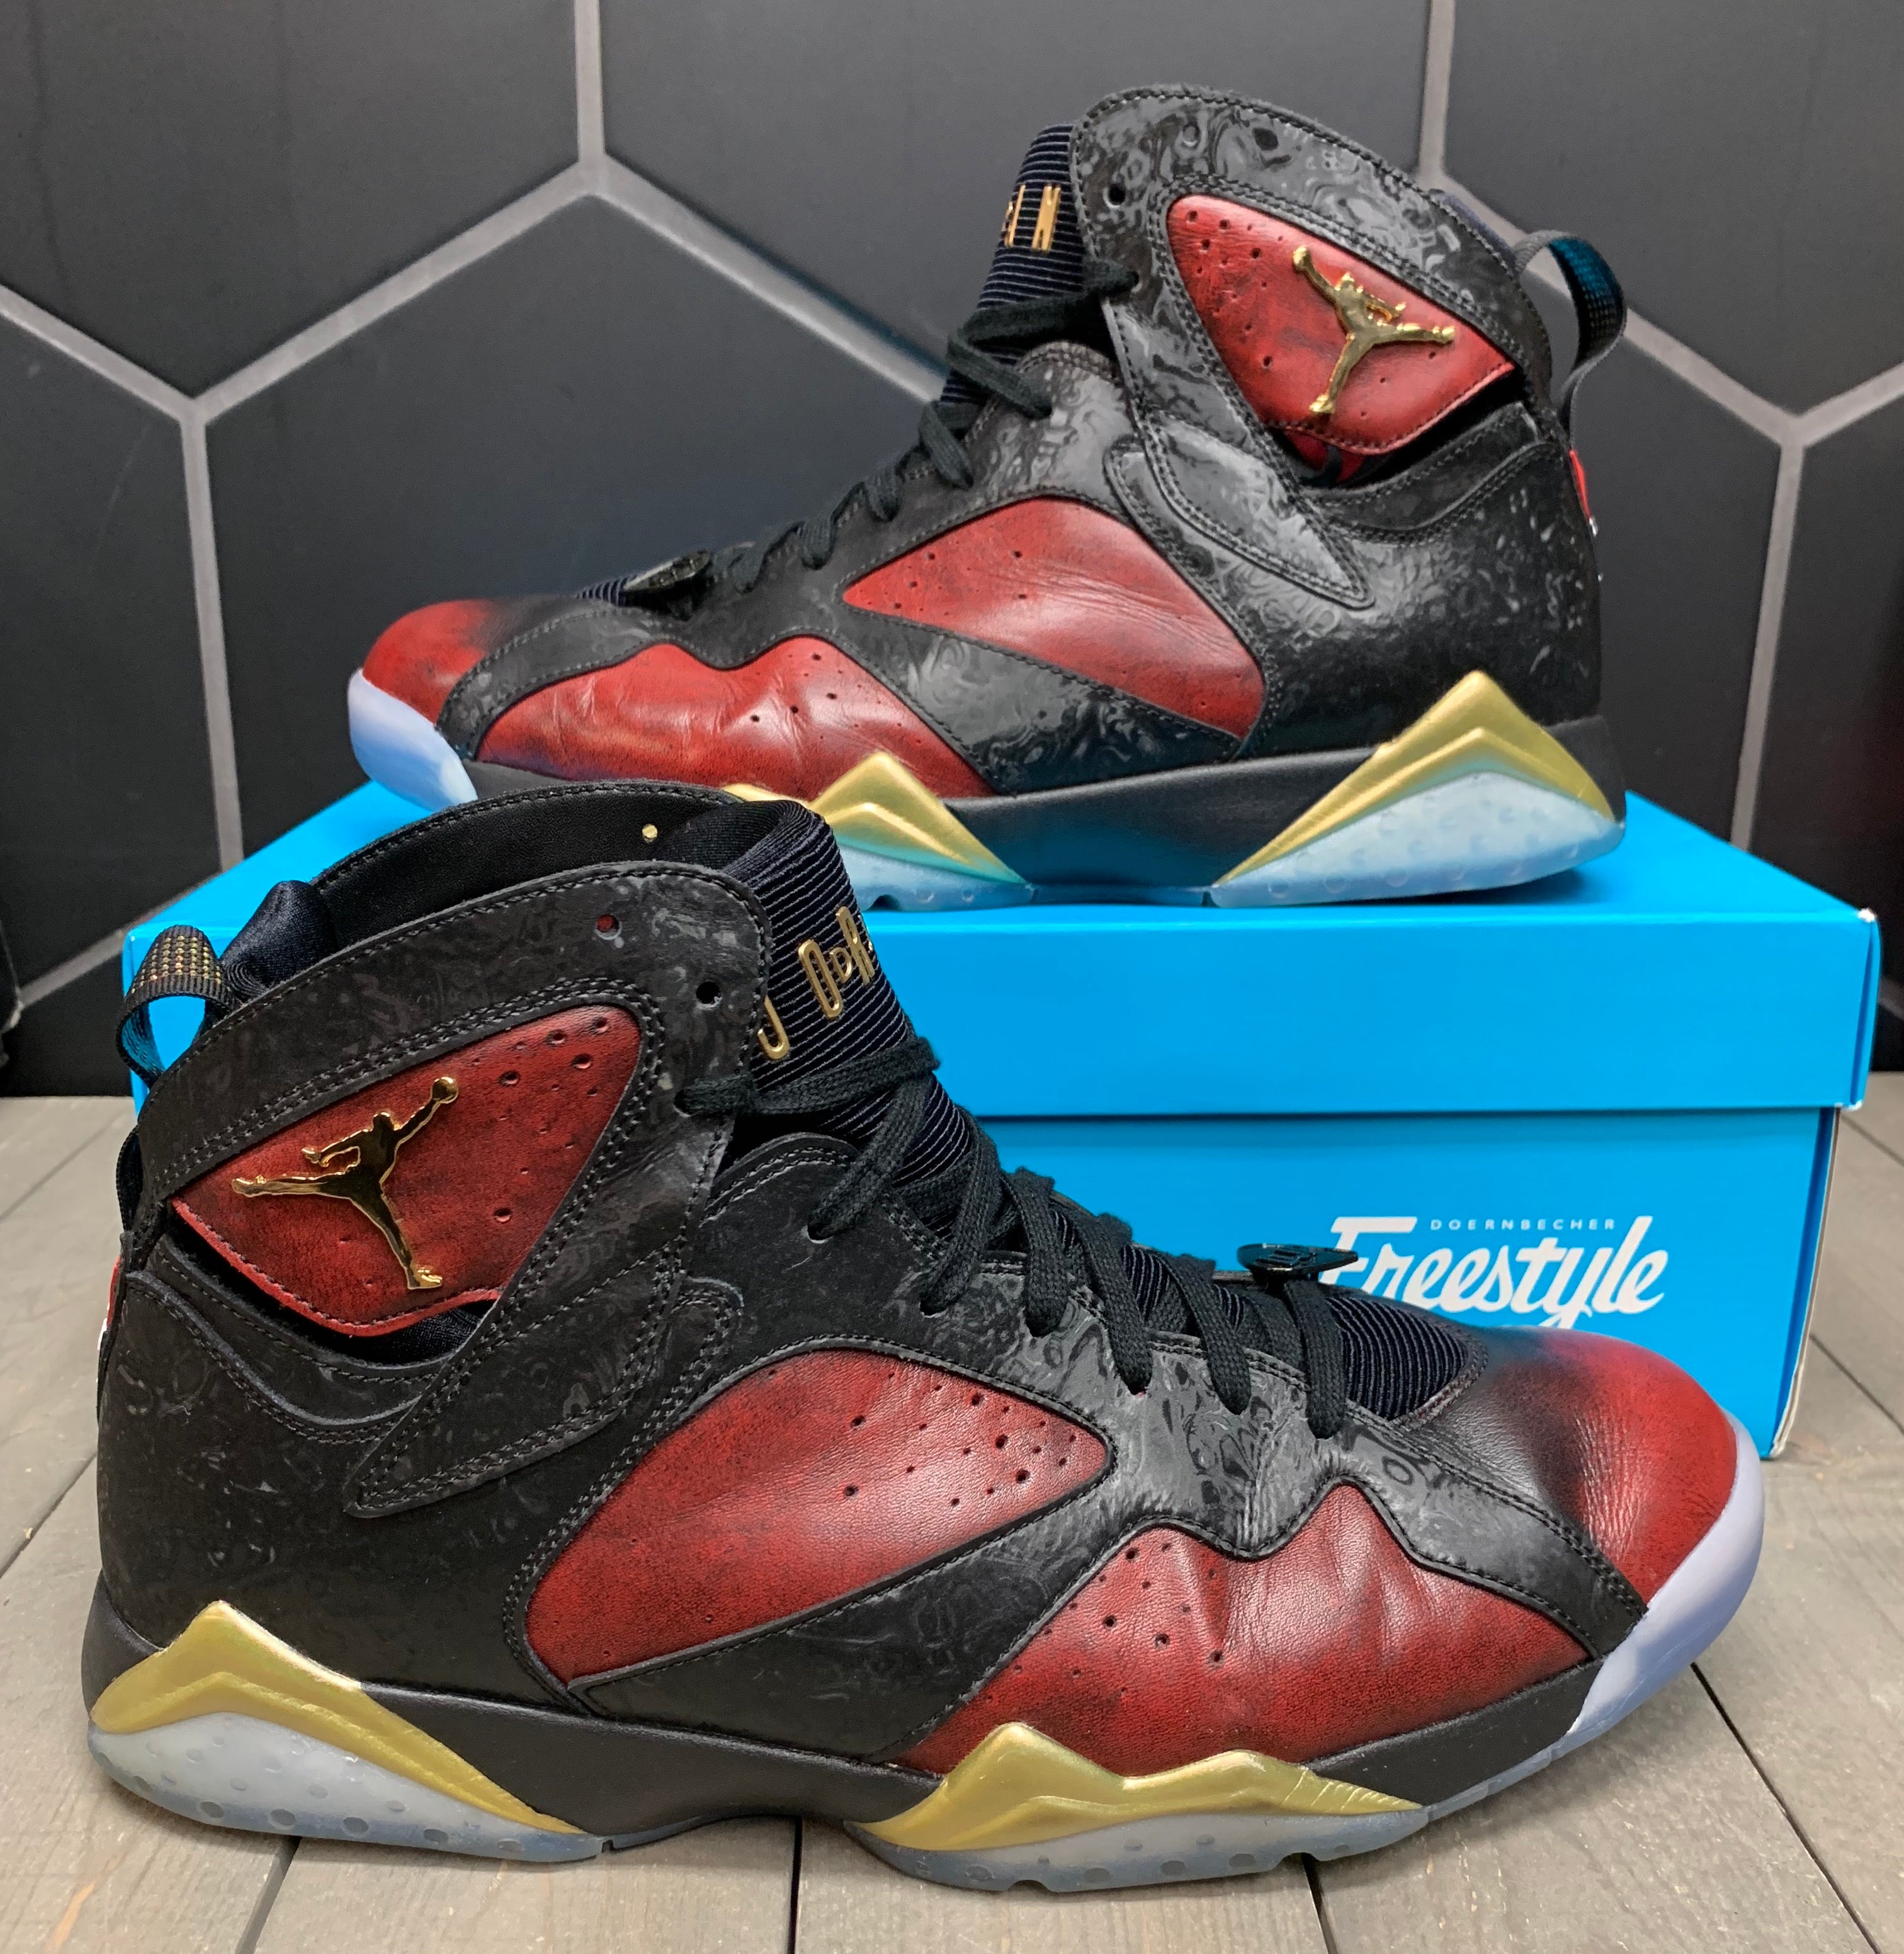 Used W/ Box! Air Jordan 7 Doernbecher Shoe Size 13